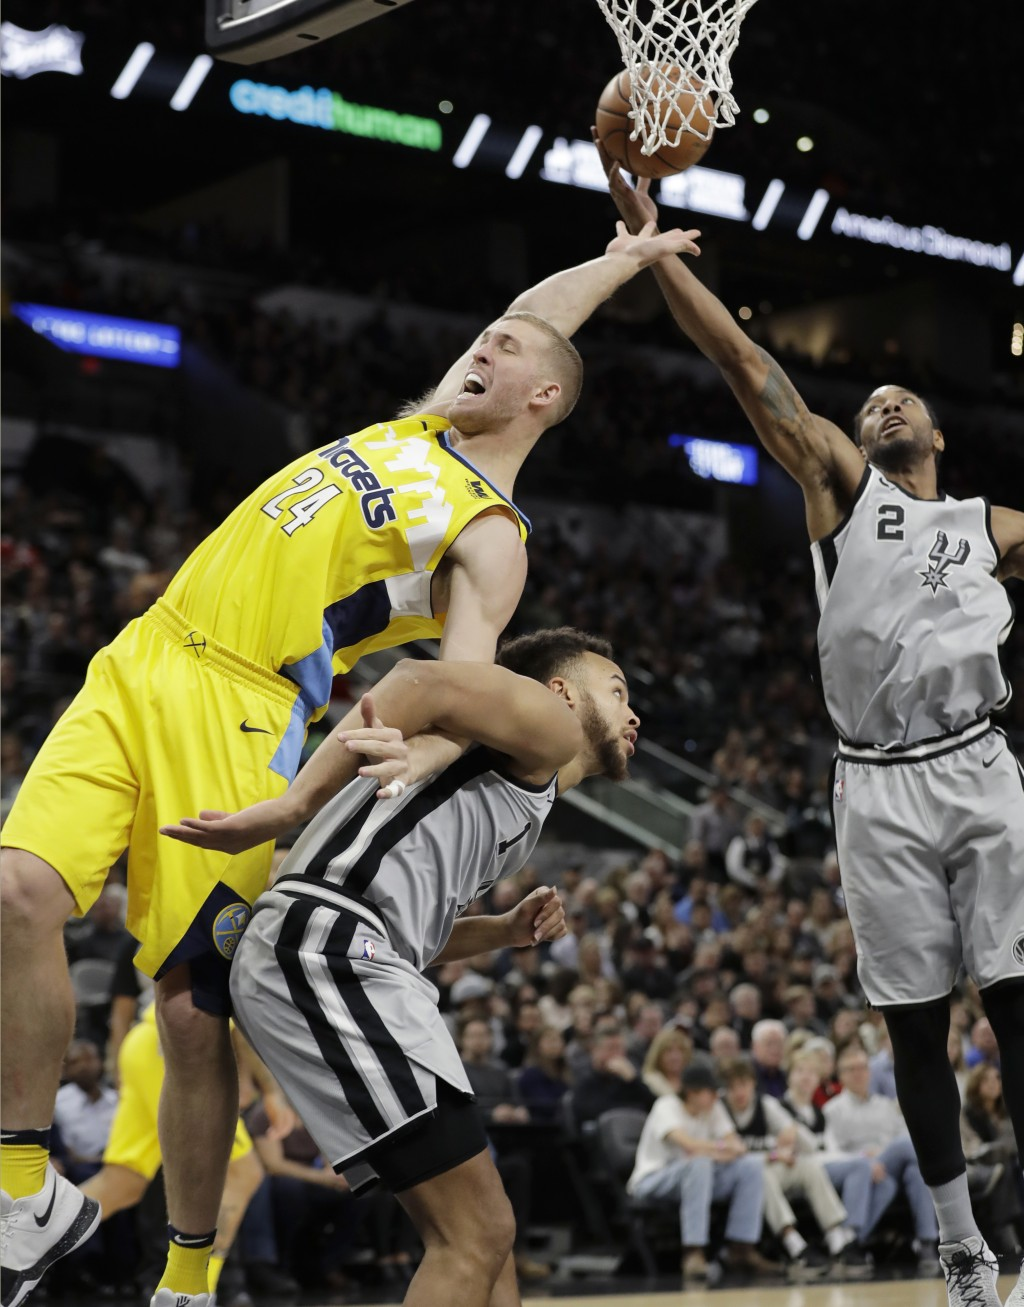 Denver Nuggets center Mason Plumlee (24) and San Antonio Spurs forwards Kyle Anderson (1) and Kawhi Leonard (2) vie for a rebound during the first hal